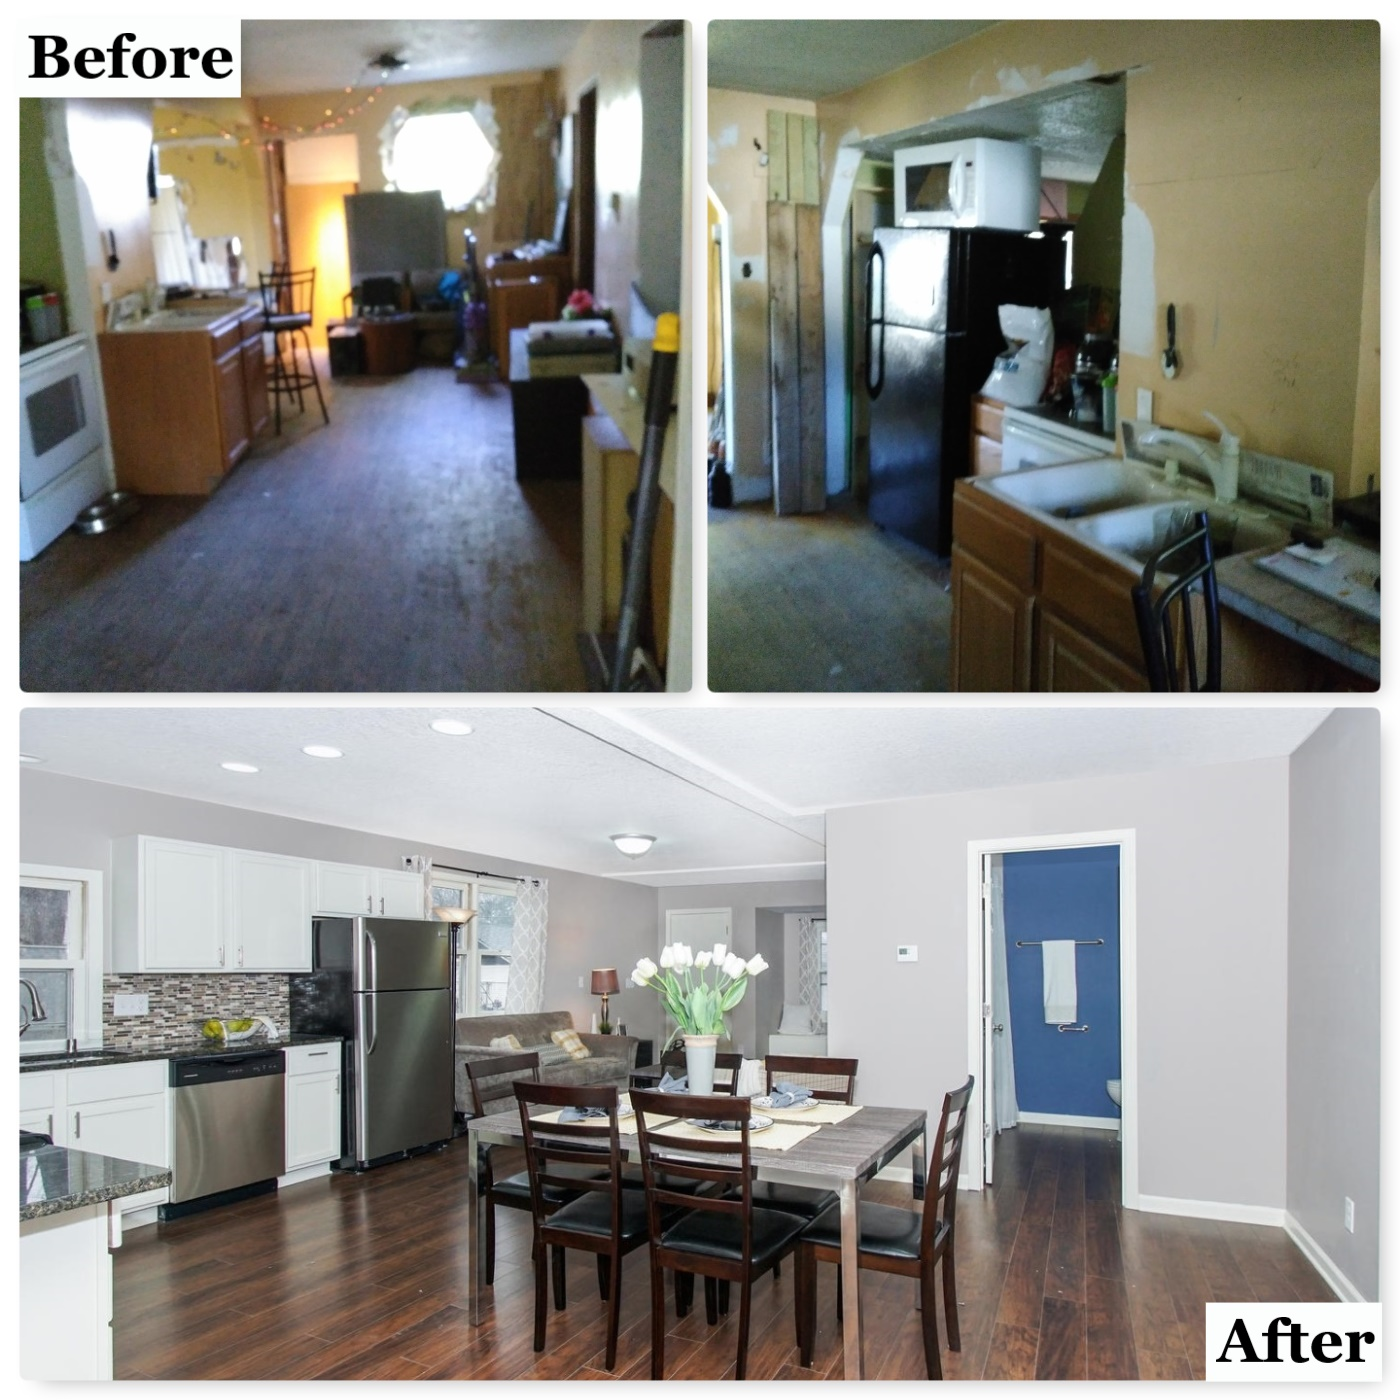 Open concept--was previously 3 rooms